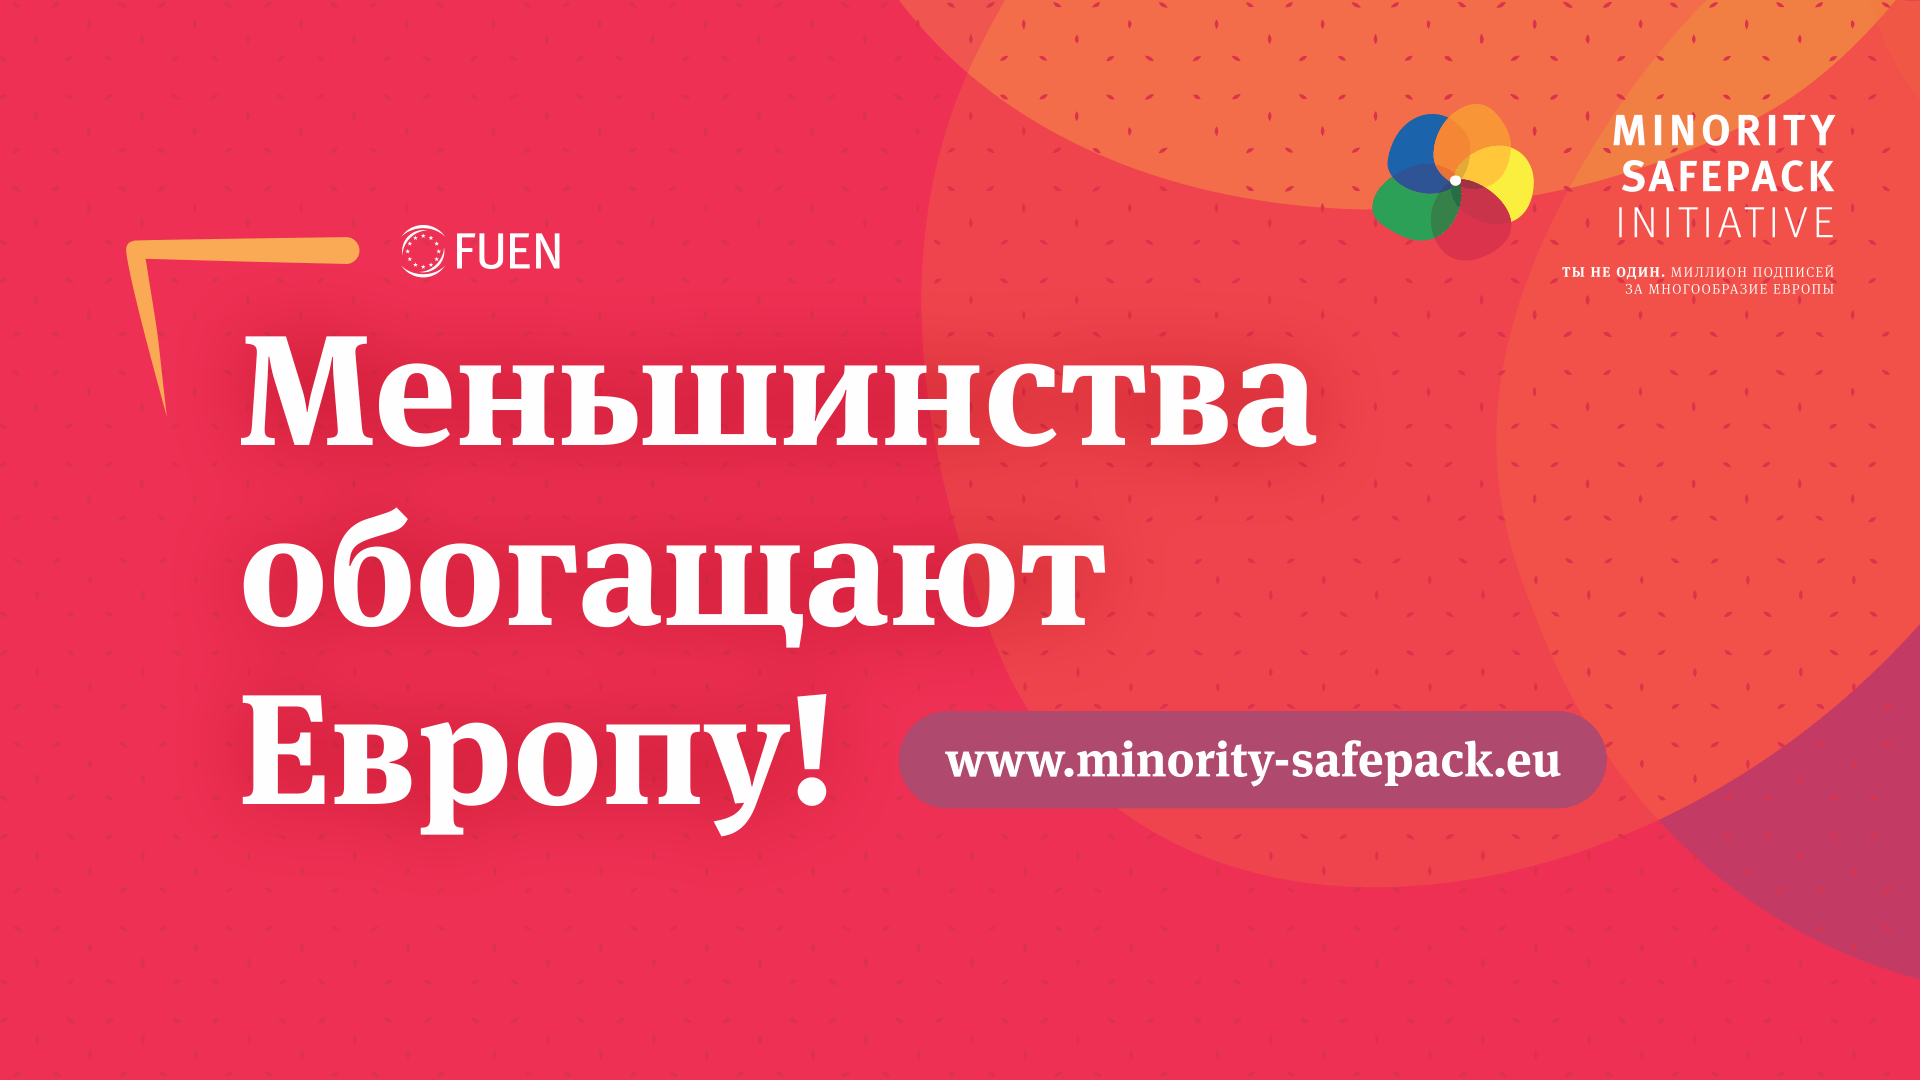 Minority SafePack – One million signatures for diversity in Europe